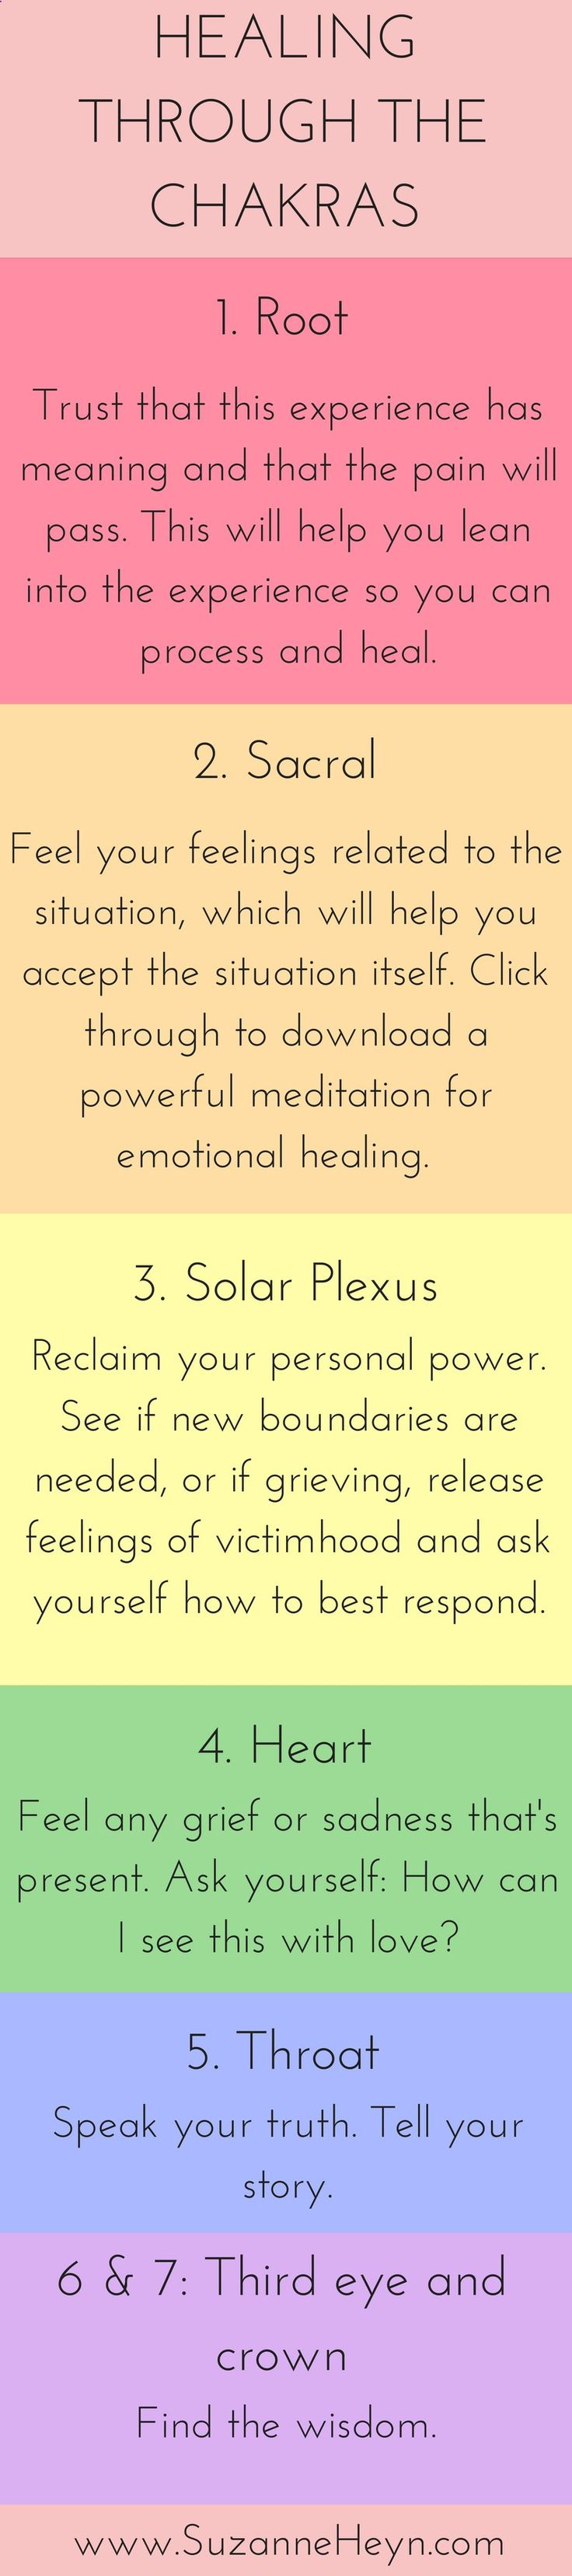 402 best reiki symbols images on pinterest reiki symbols click through for a powerful free meditation for emotional healing discover how to heal through the chakras spiritual seekers looking to buycottarizona Choice Image